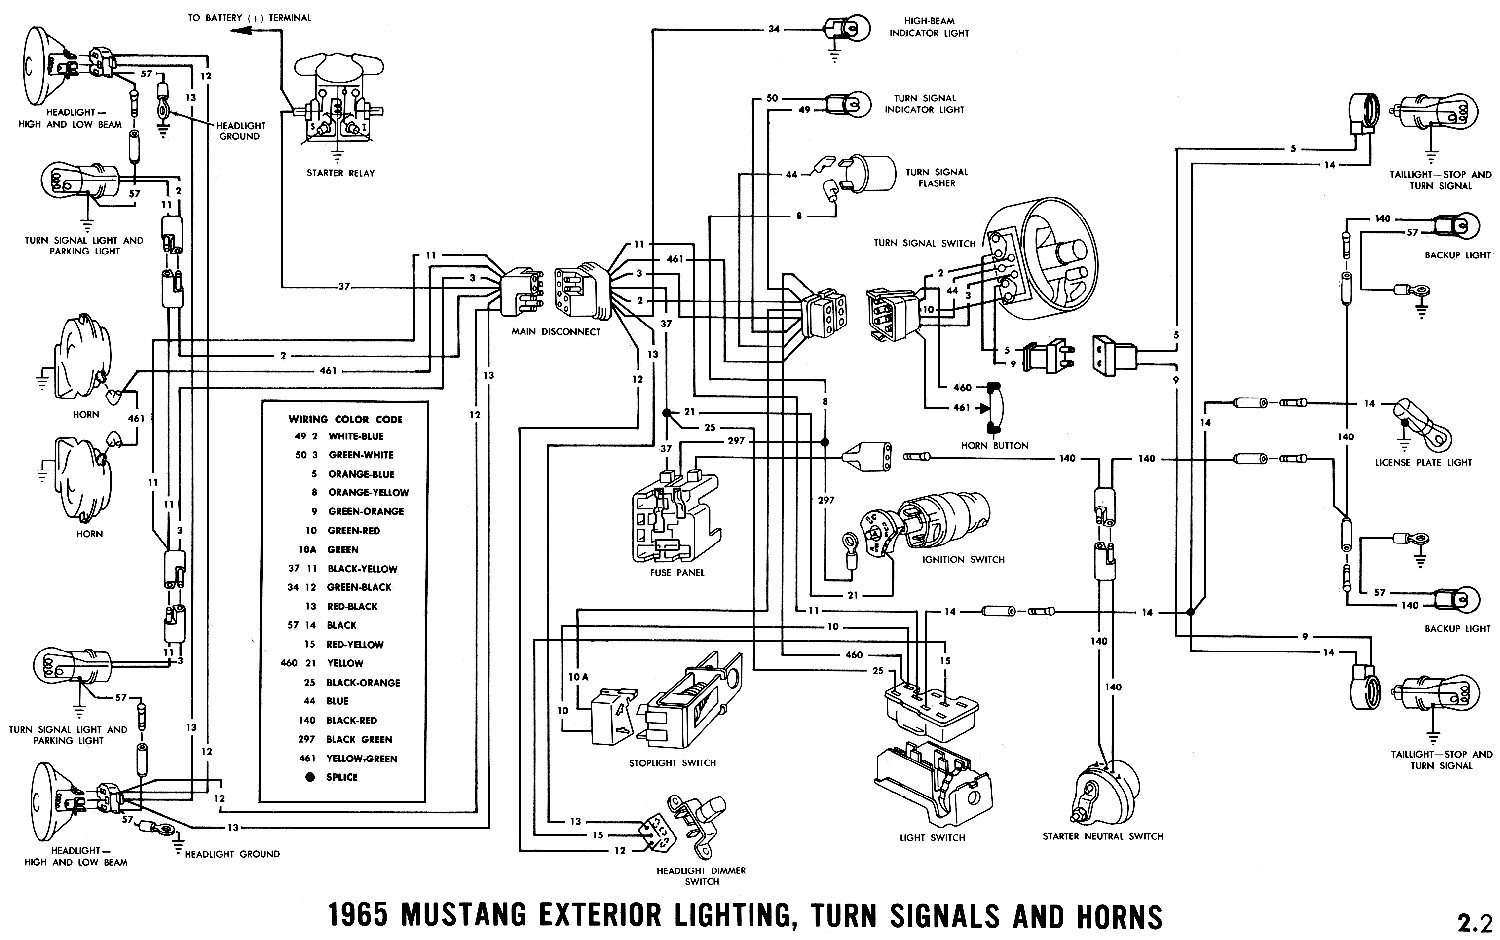 1969 F100 Wiring Harness Diagram Description As Well Ford Ignition On 1978 F150 Diagrams Best 1968 Source 1973 1979 Truck